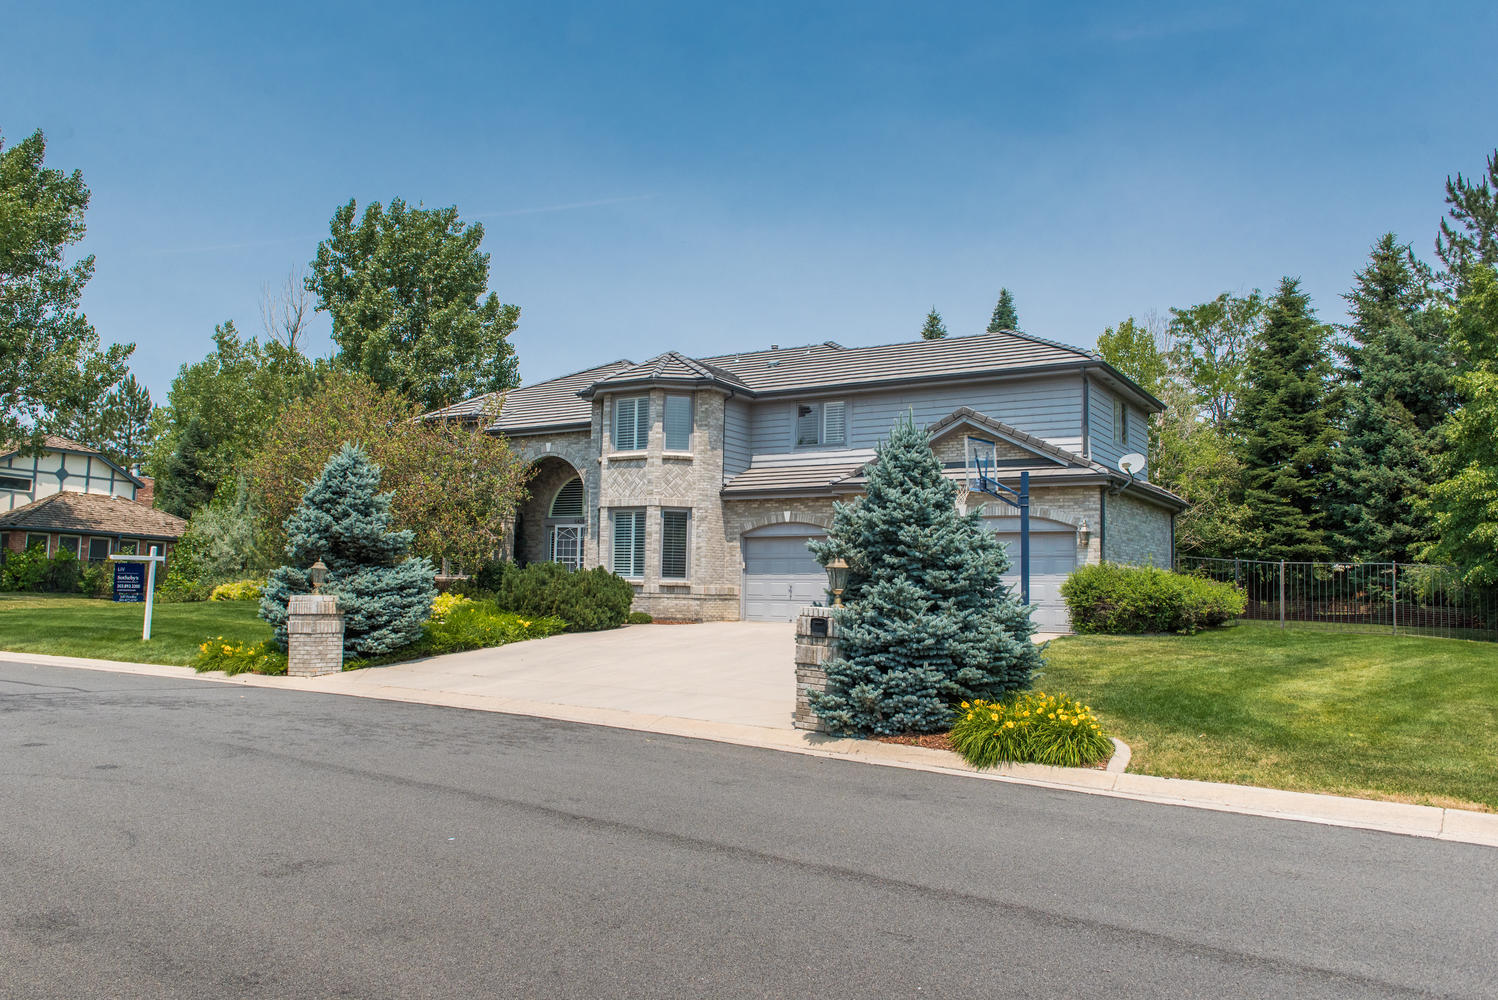 Single Family Home for Sale at Magnificent, Stately and Rare Contemporary Home 6431 E Radcliff Ave Cherry Hills Village, Colorado, 80111 United States